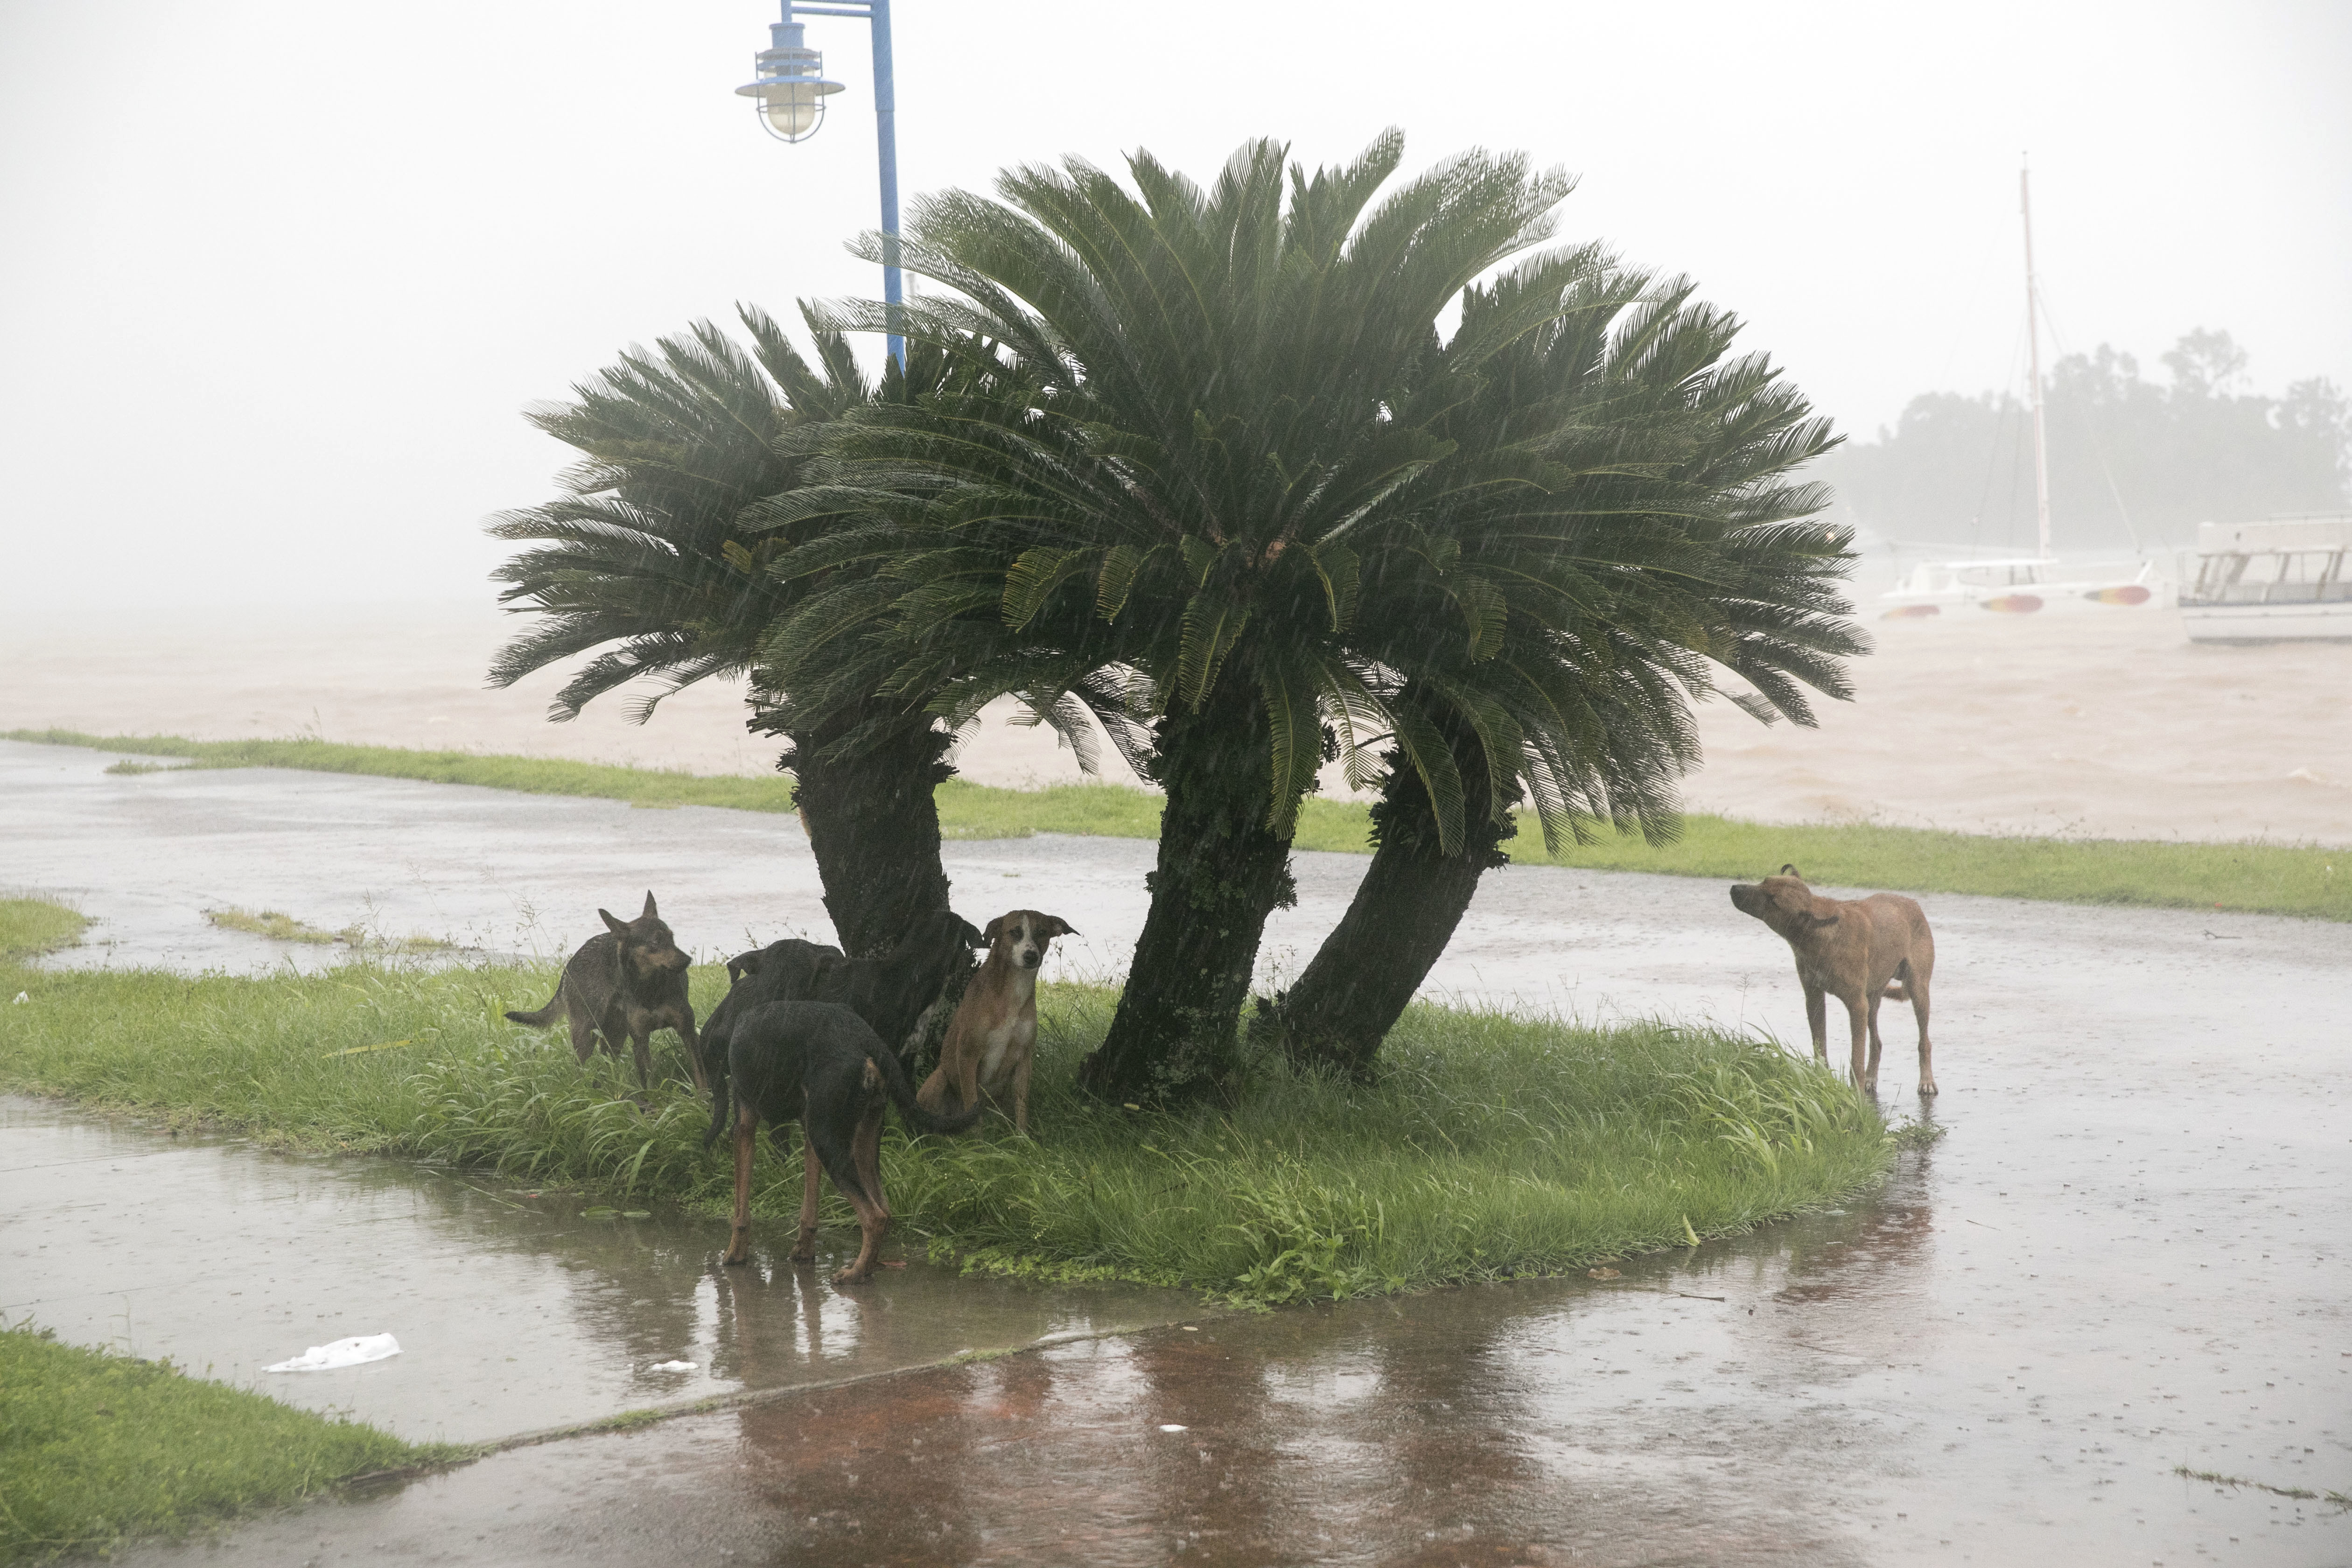 "<div class=""meta image-caption""><div class=""origin-logo origin-image none""><span>none</span></div><span class=""caption-text"">Dogs take refuge from the rain as Hurricane Irma makes its entry into Samana, Dominican Republic, Thursday, Sept. 7, 2017. (Tatiana Fernandez/AP Photo)</span></div>"